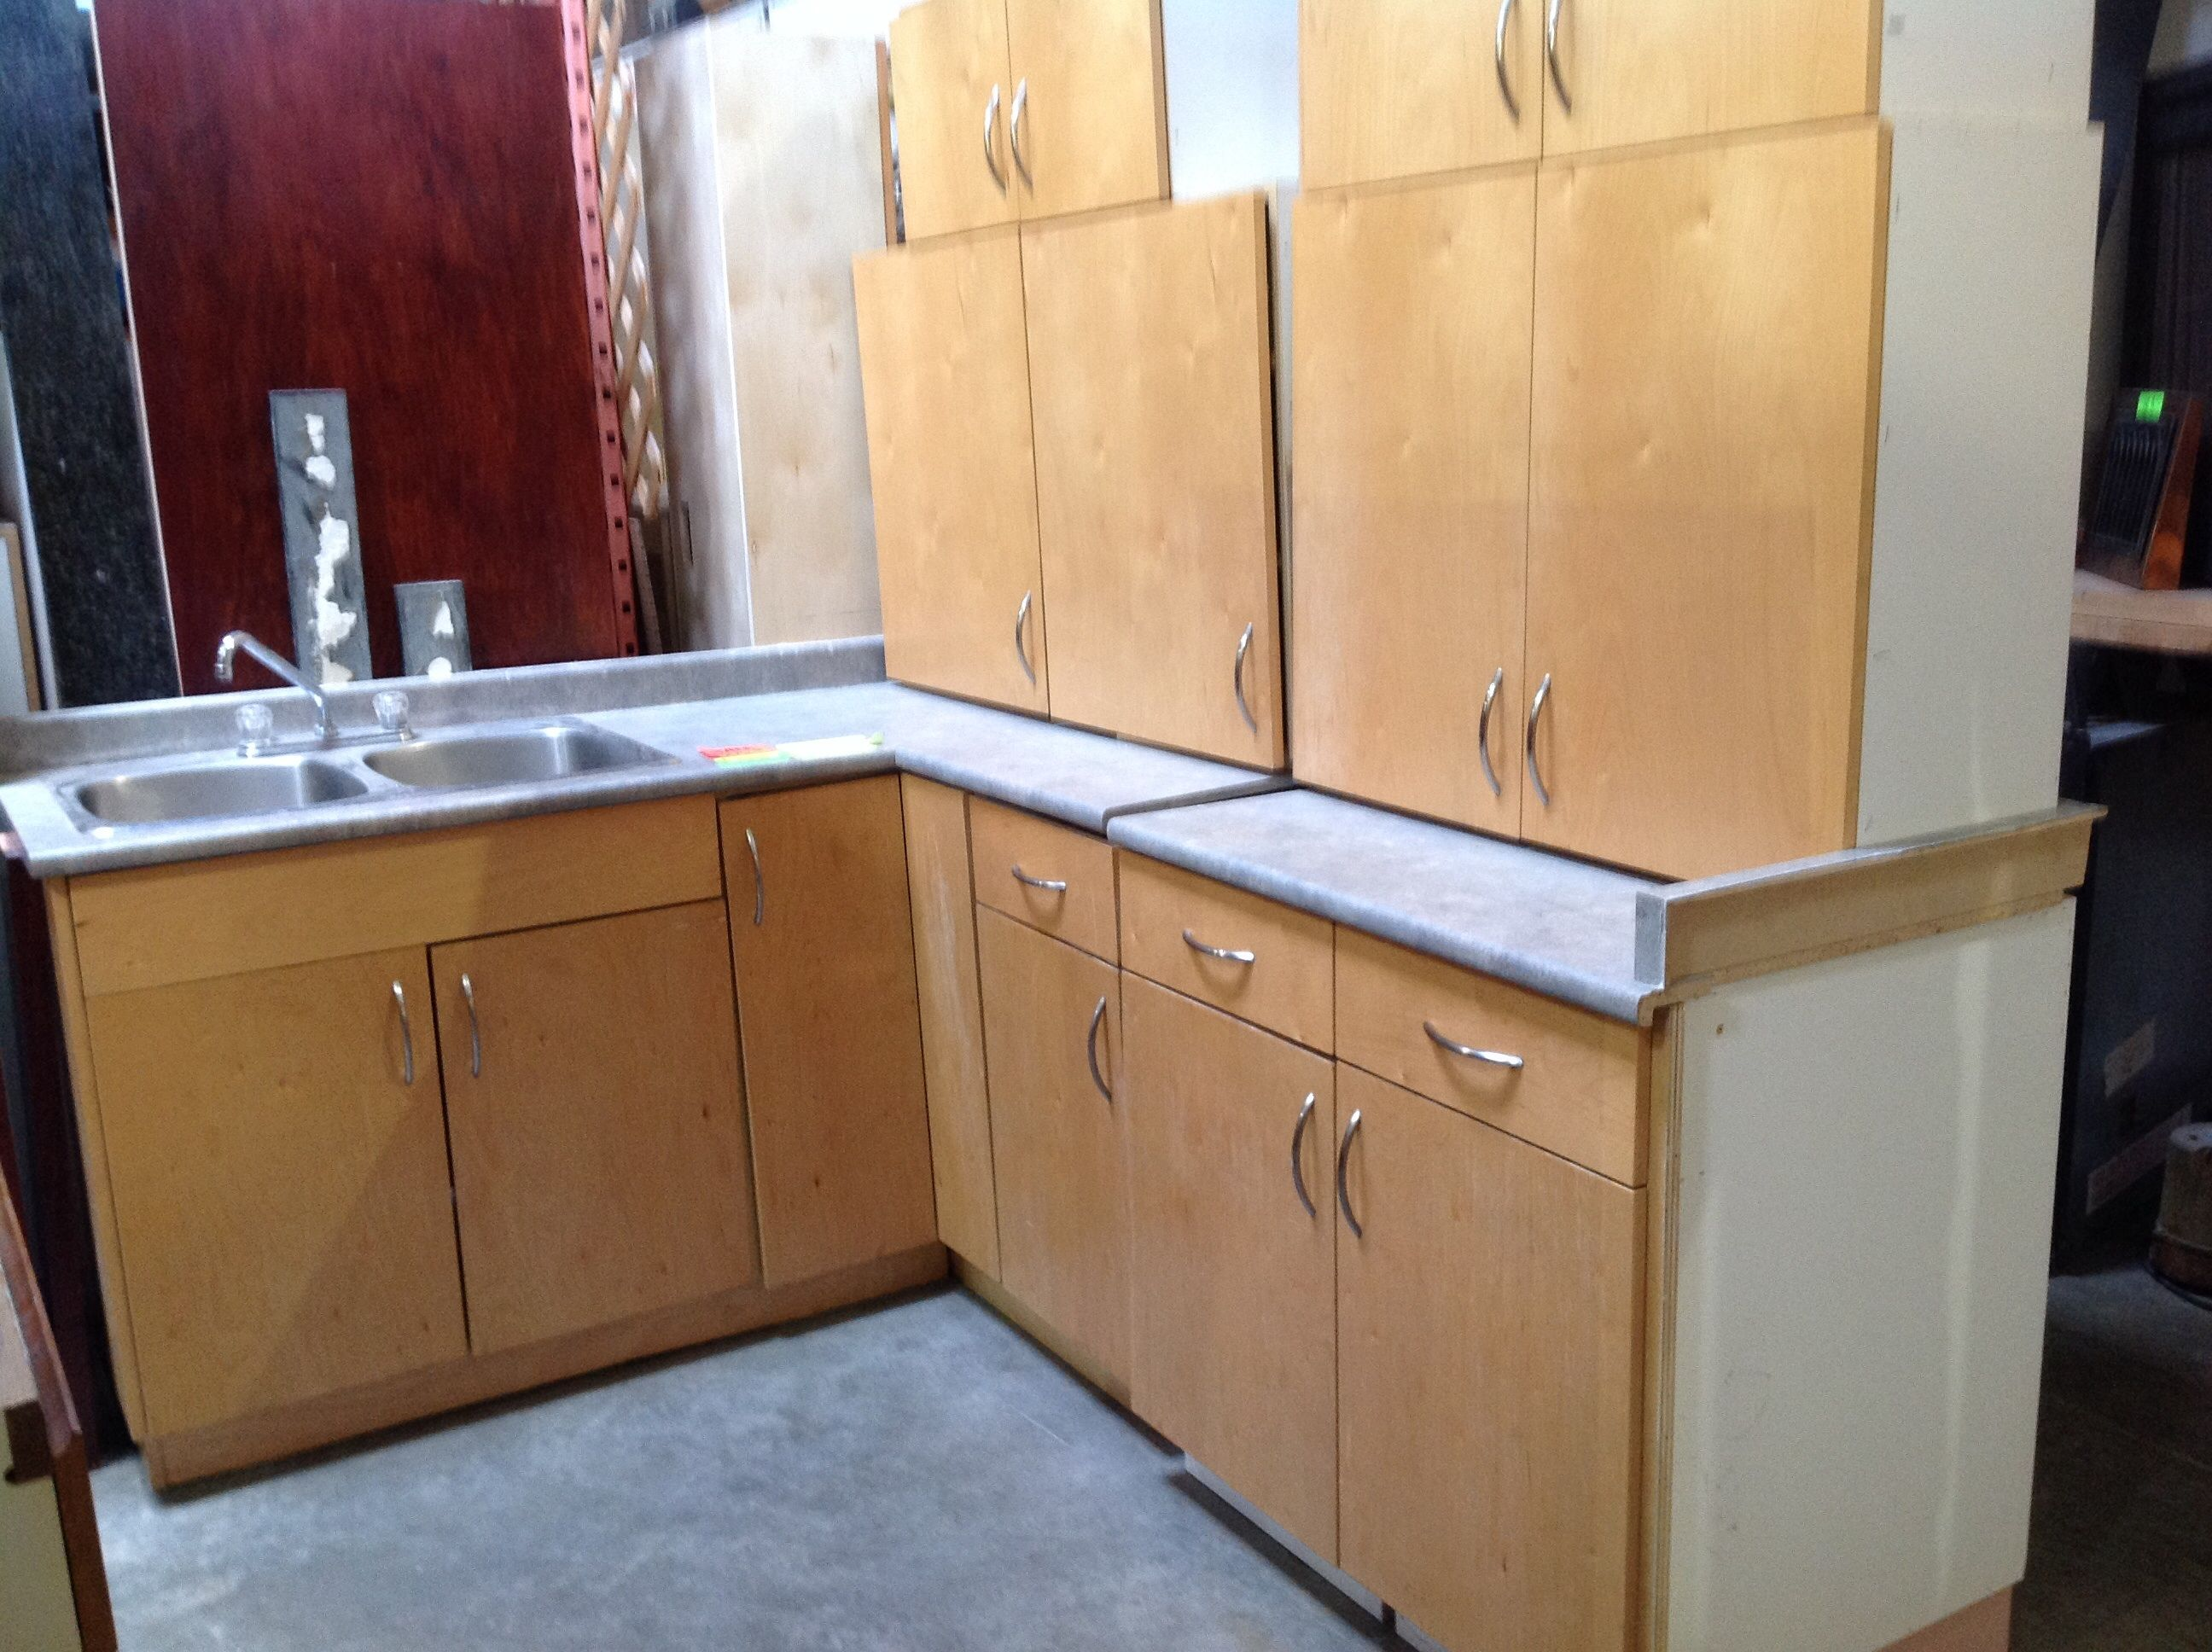 Used Kitchen Cabinets Chilliwack New And Used Building Materials Inc Used Kitchen Cabinets Kitchen Cabinets Kitchen Cabinet Doors